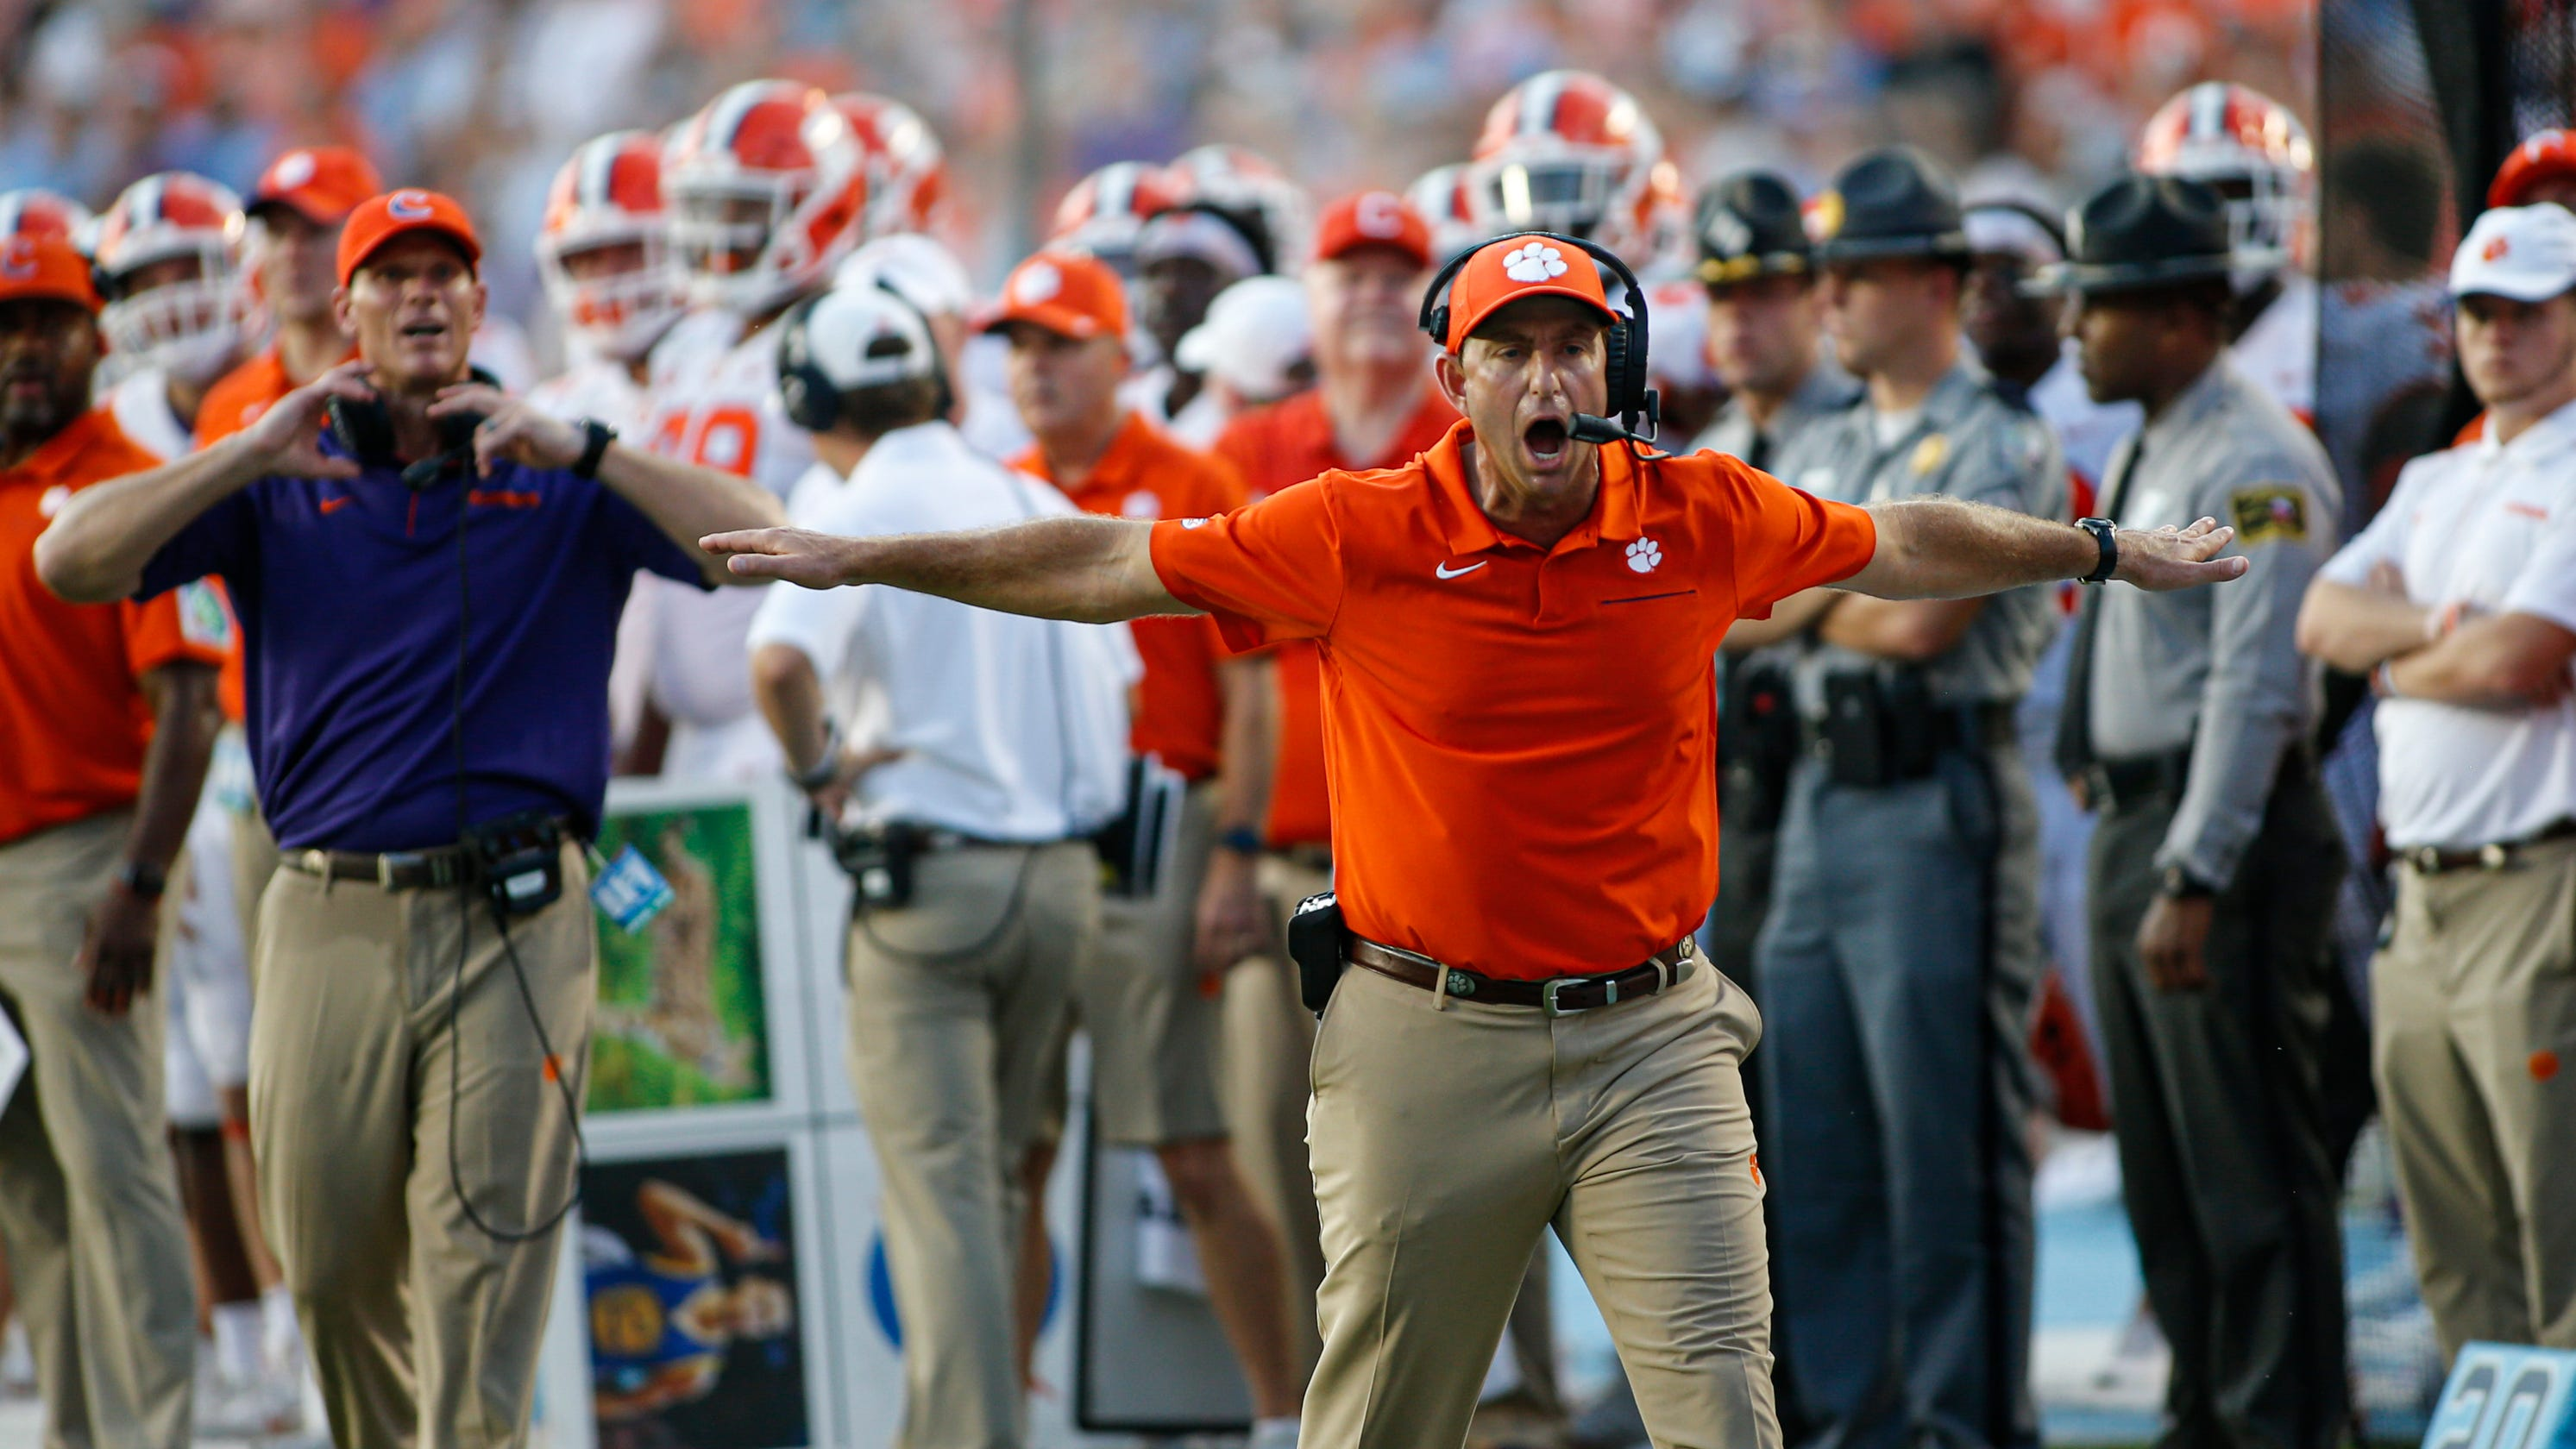 Clemson is clearly *not* the best college football team